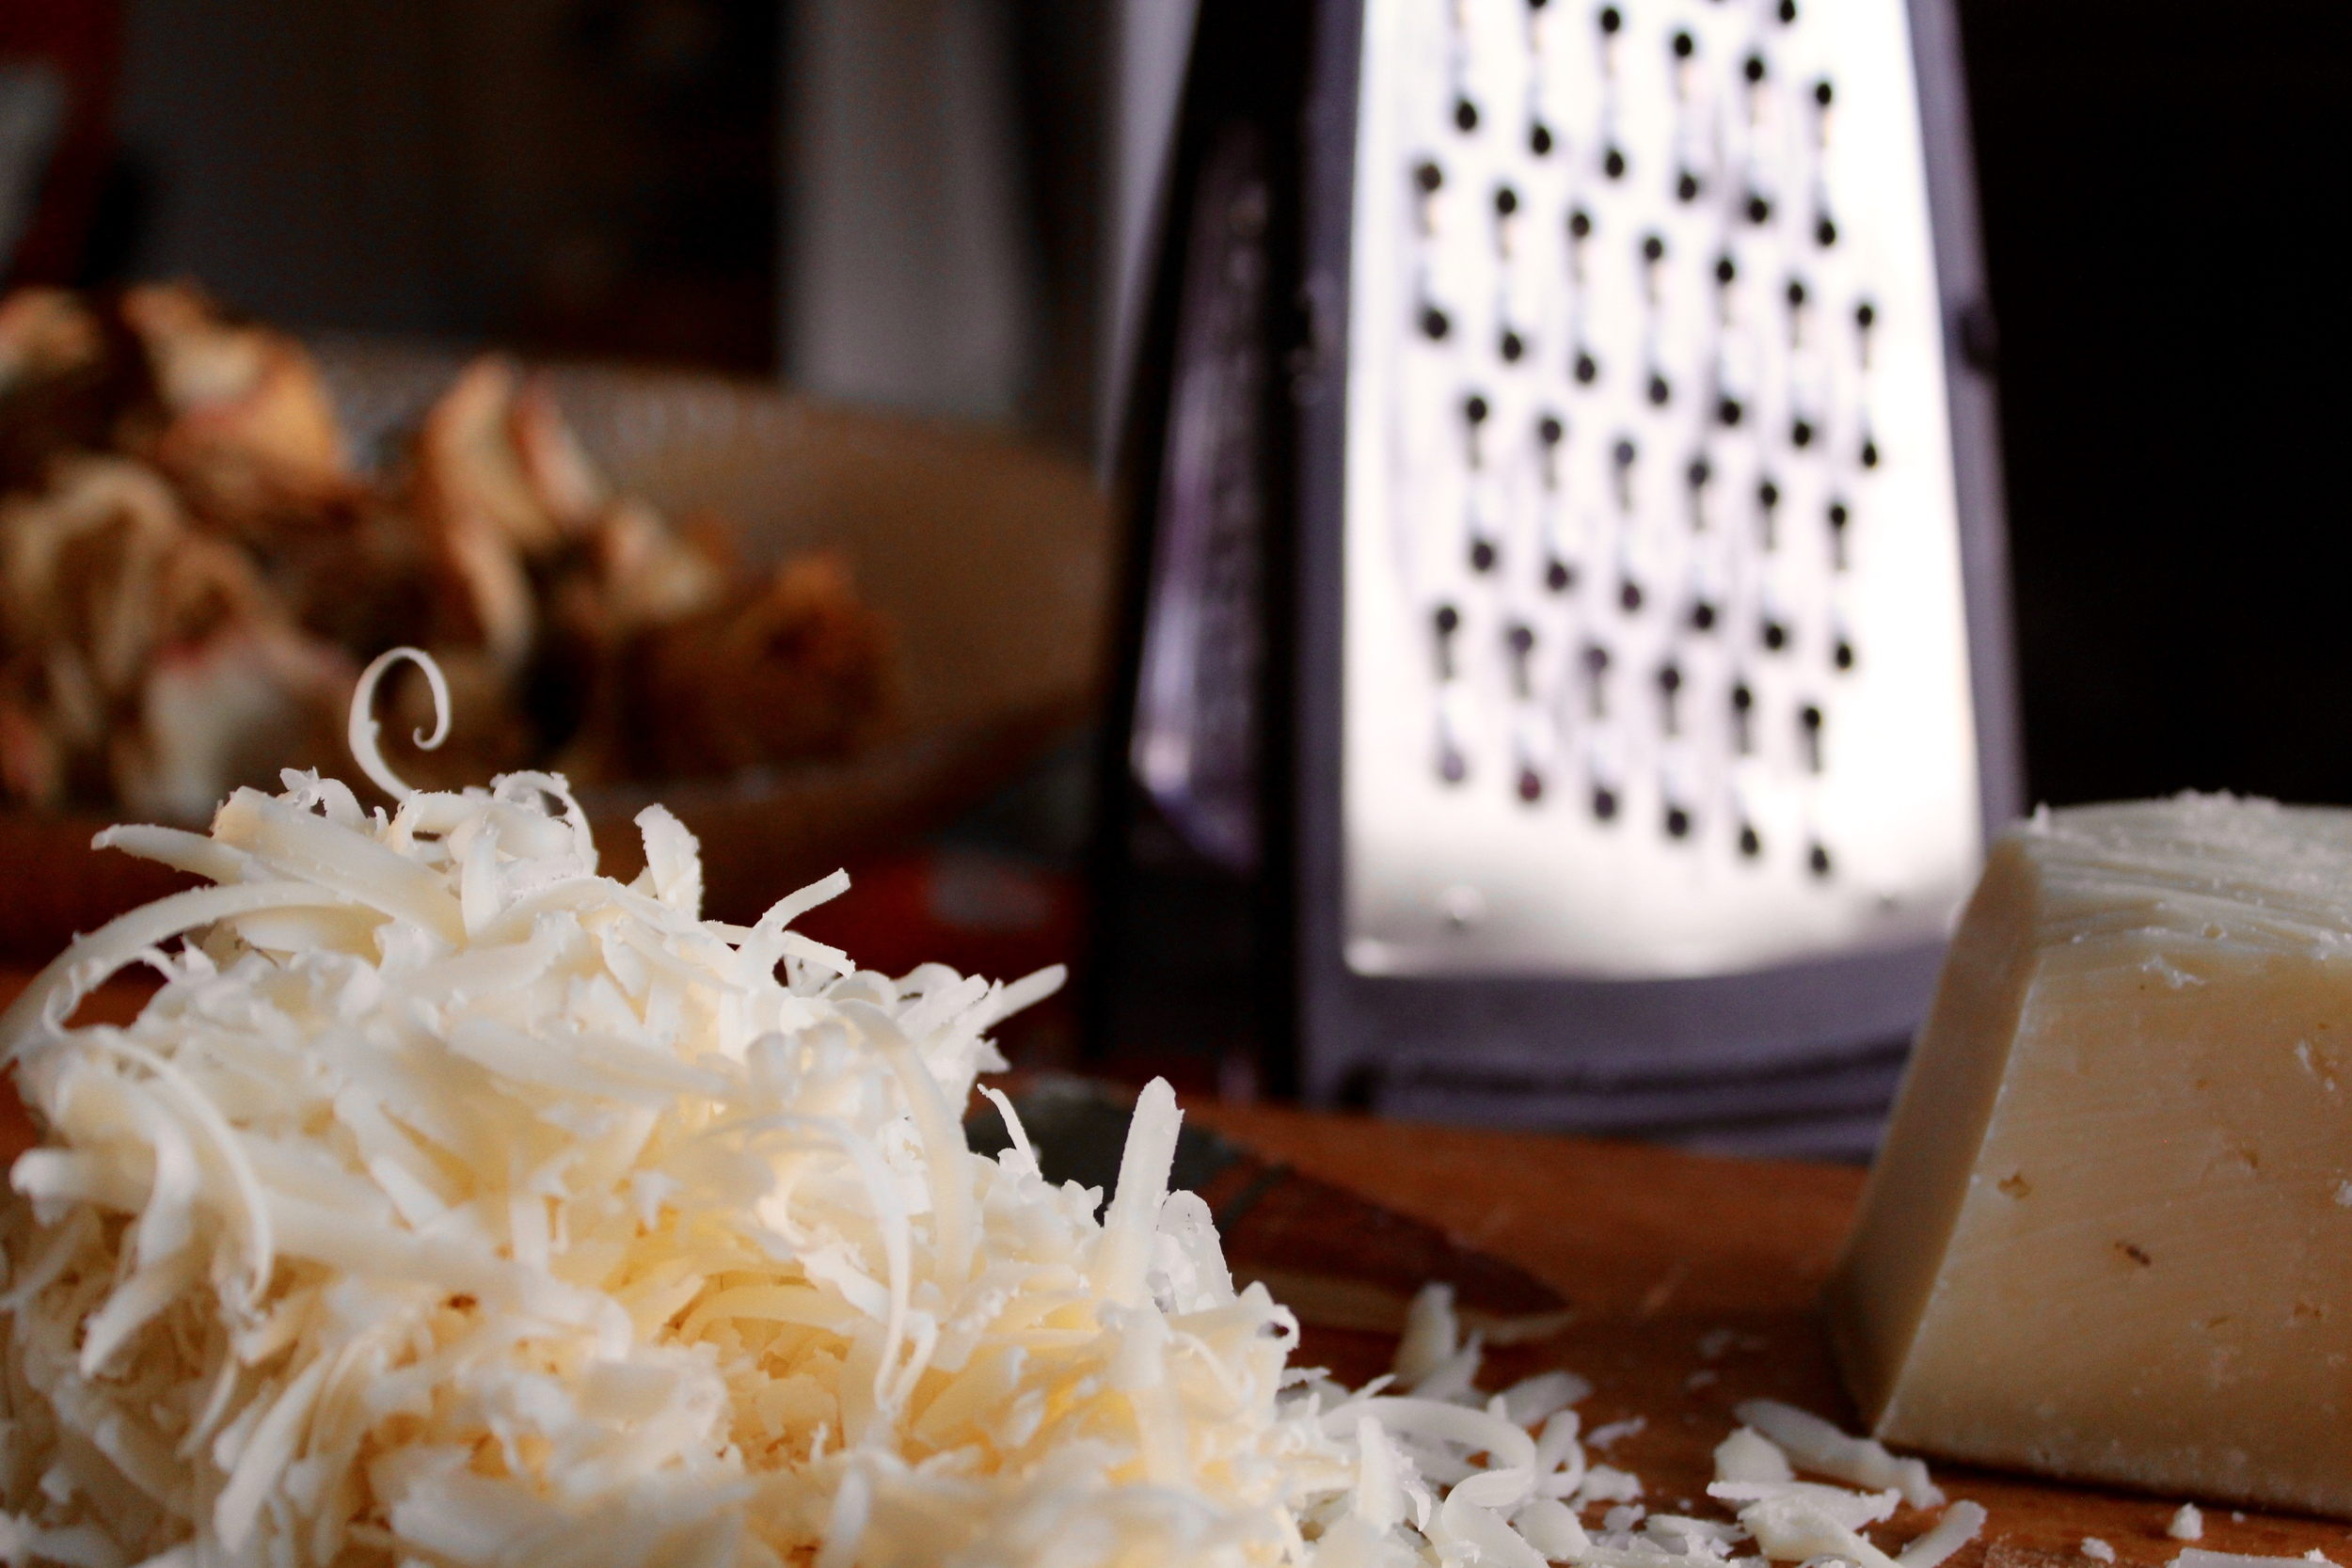 Clearly the grated cheese gets me quite excited.